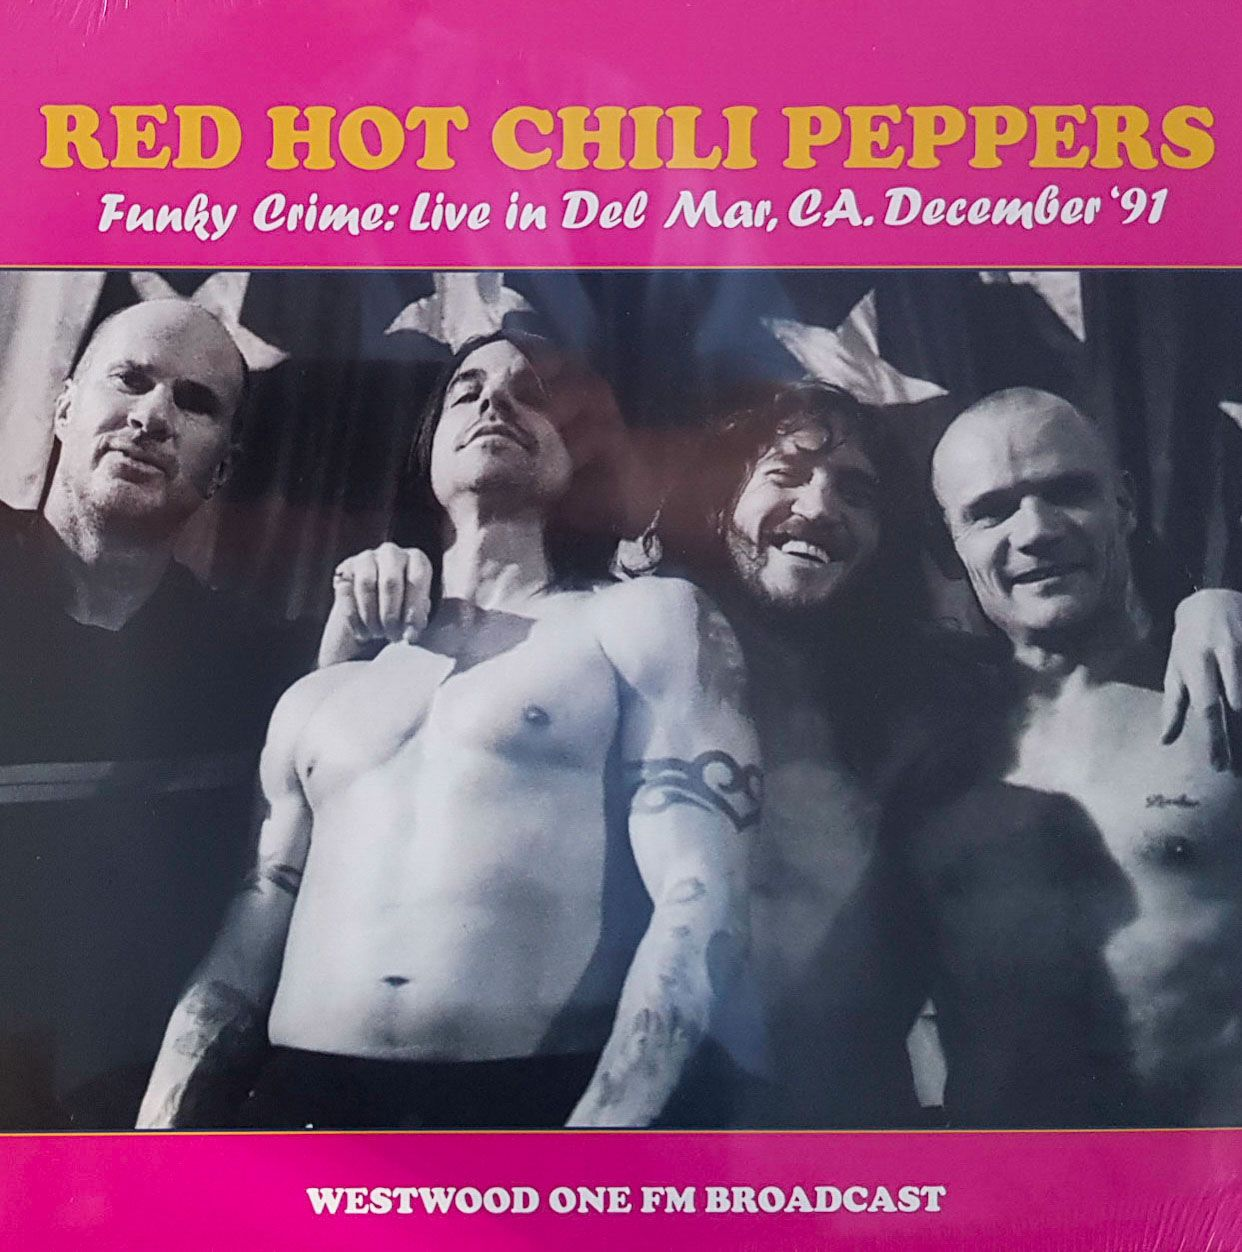 Lp Vinil Red Hot Chili Peppers Funky Crime: Live In Der Mar